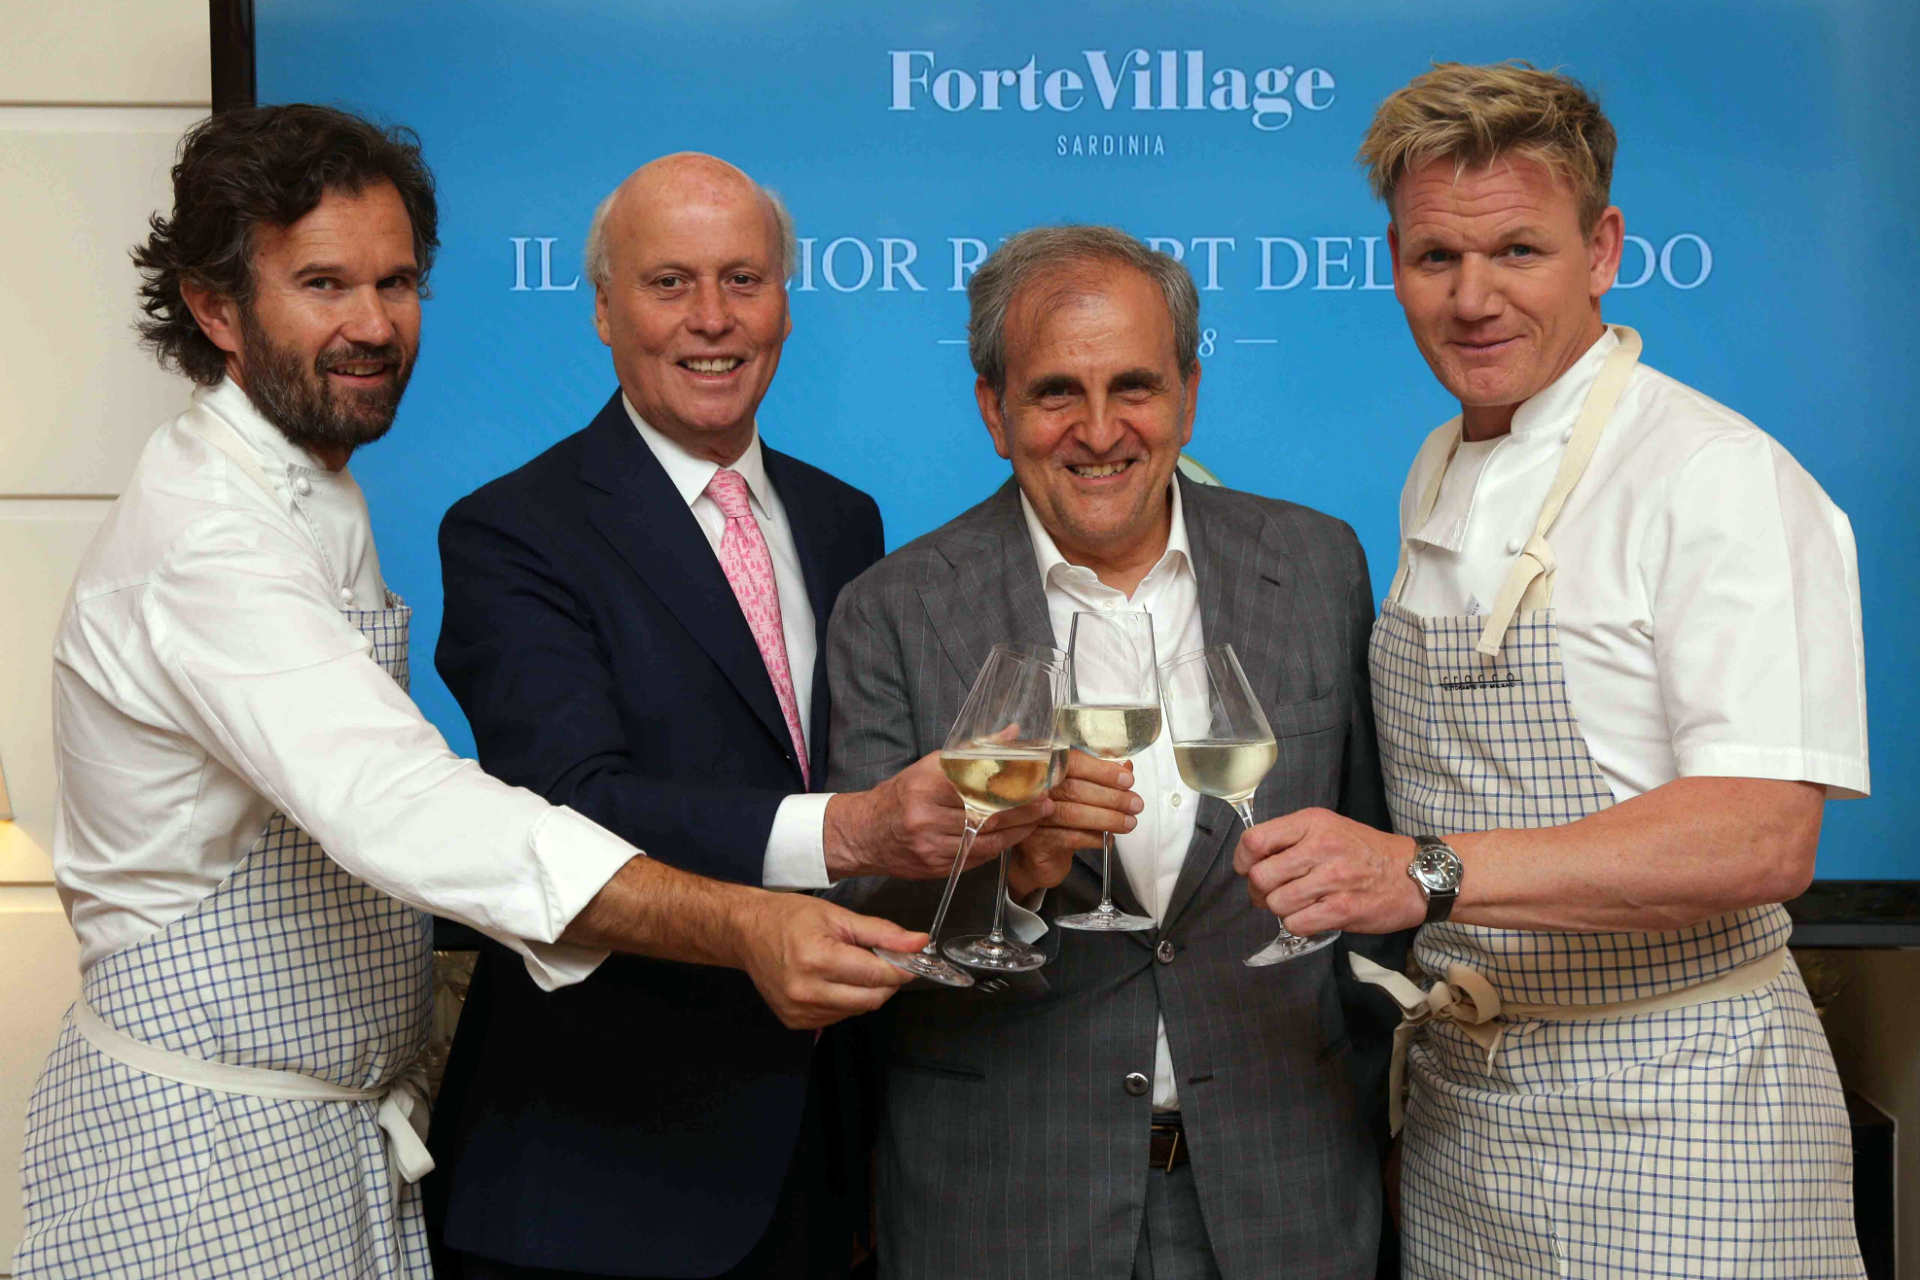 CENA CRACCO – GORDON RAMSEY PER IL FORTE VILLAGE